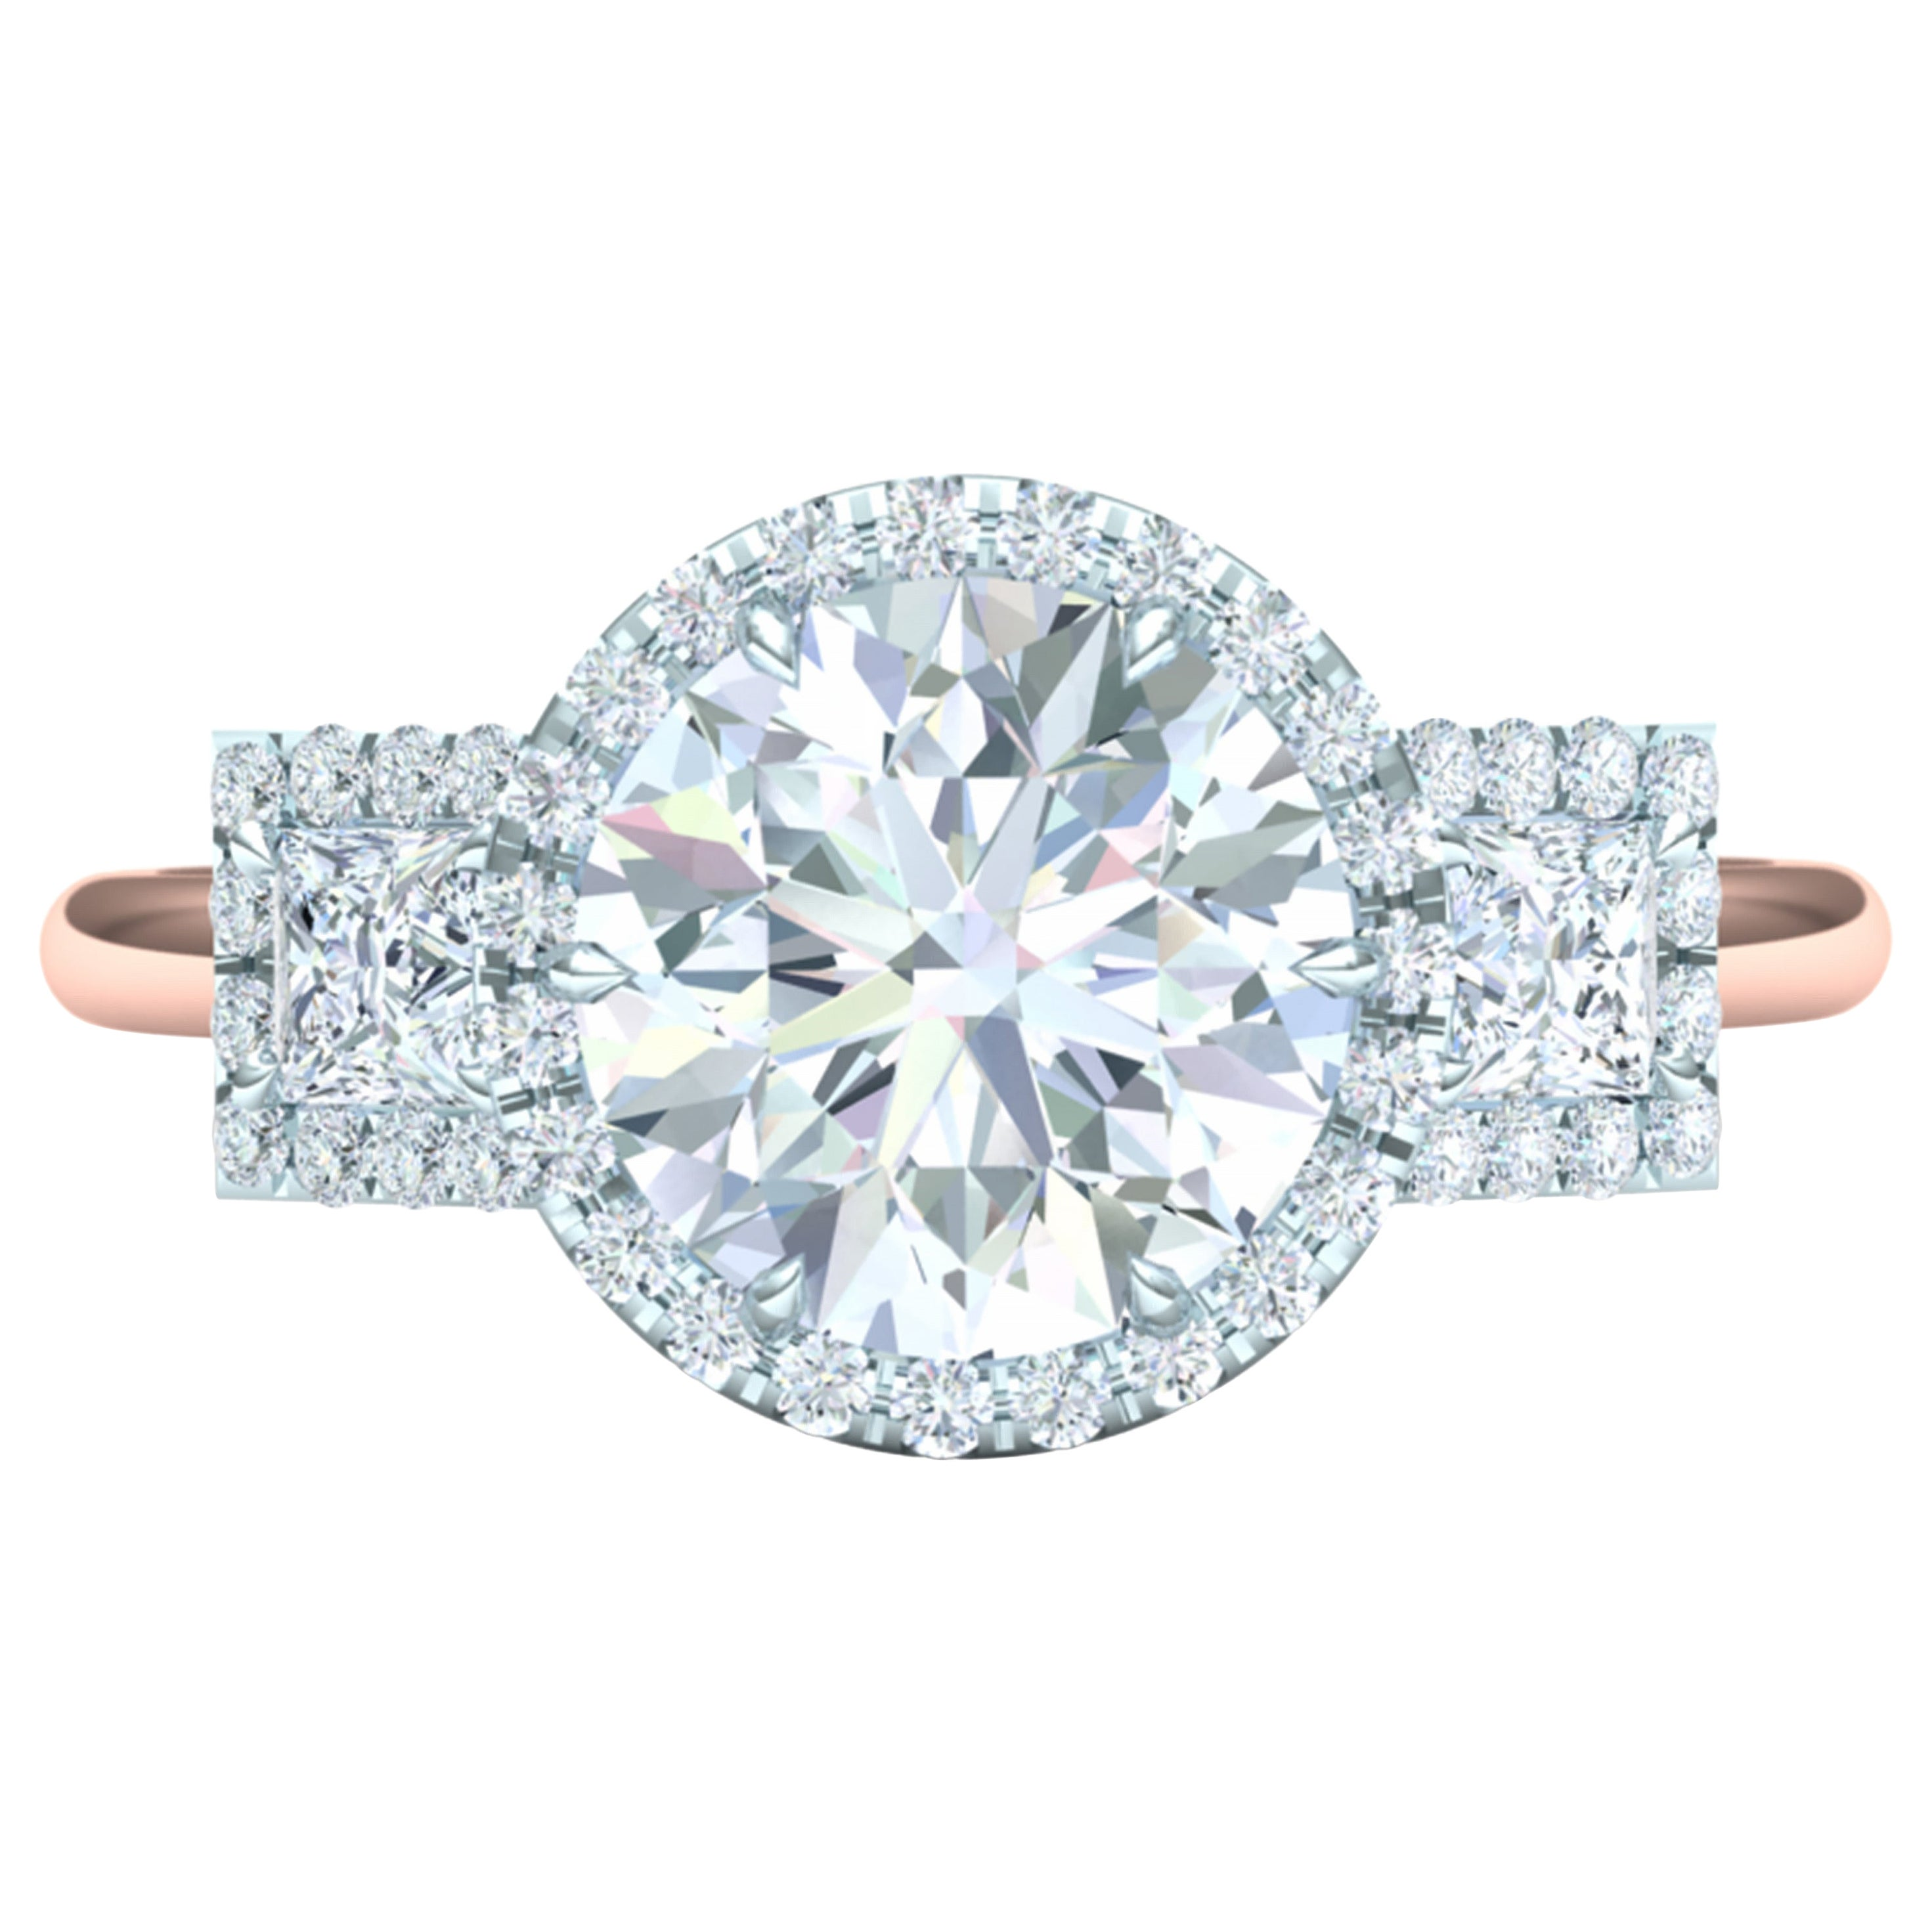 1.30 Carat Round Brilliant GIA Certified E-VS2